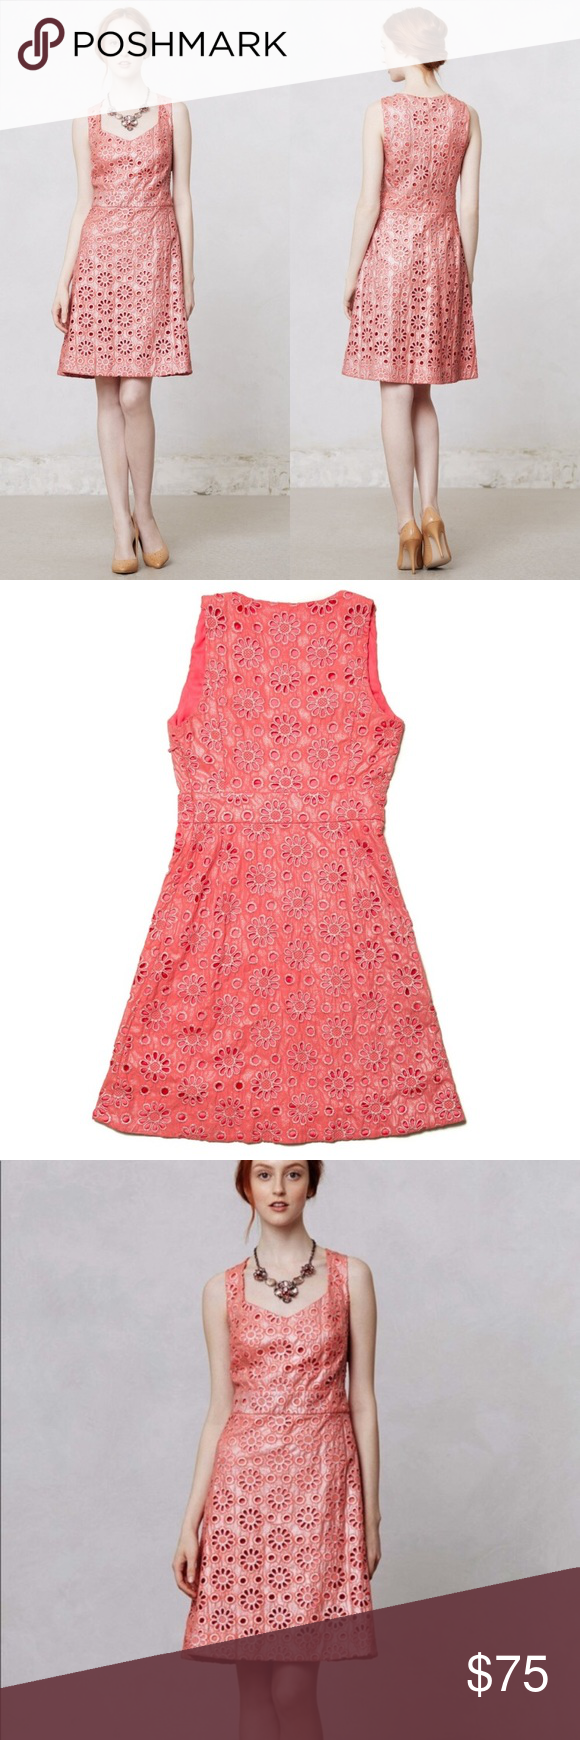 4c76b9ceecd1 NWT Anthropologie coral eyelet midi dress Mint condition new with tags coral  eyelet floral midi sleeveless dress by Maeve for Anthropologie.